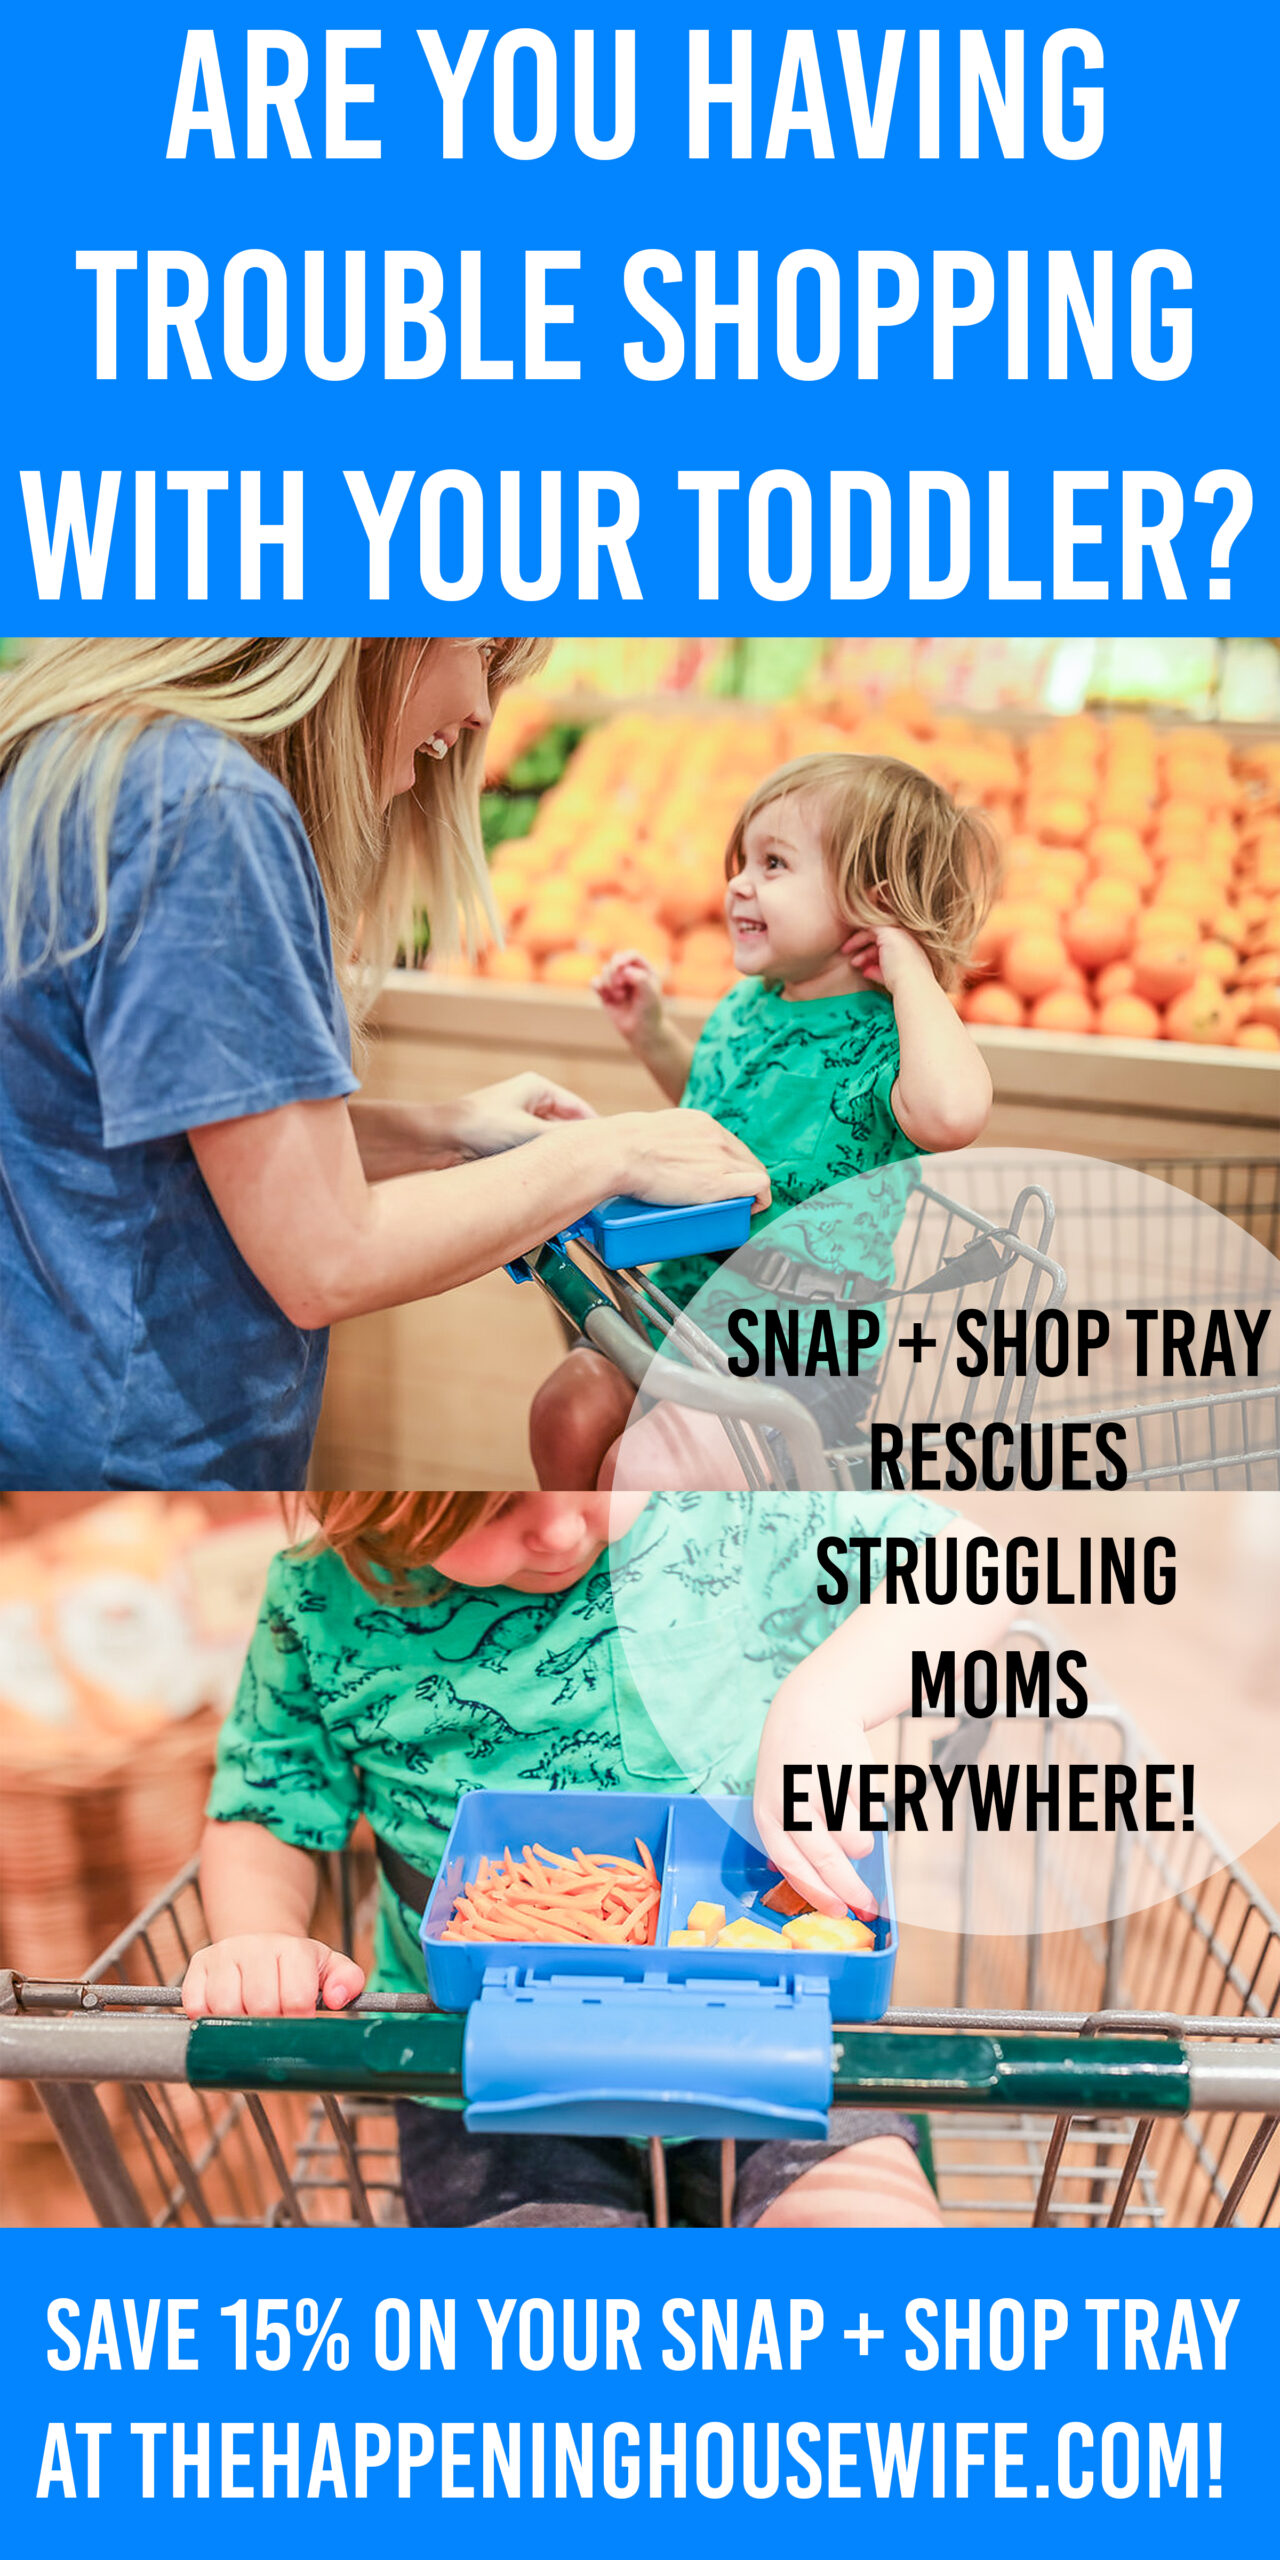 Snap and Shop Tray for Moms of Toddlers.jpg